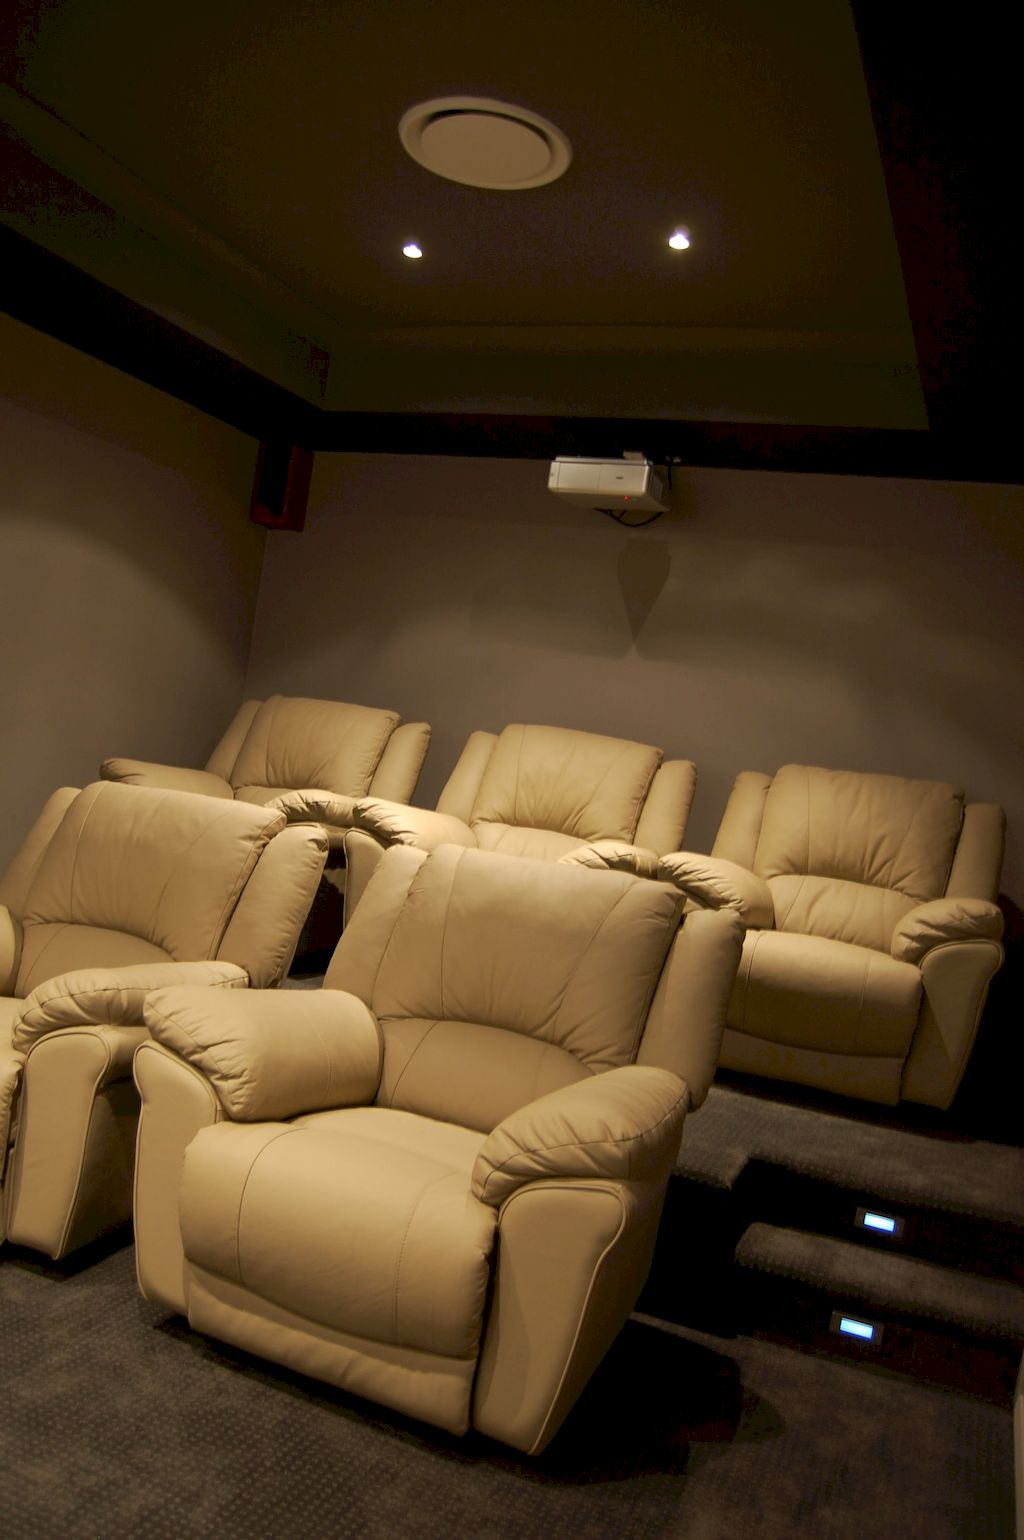 Home Cinema119